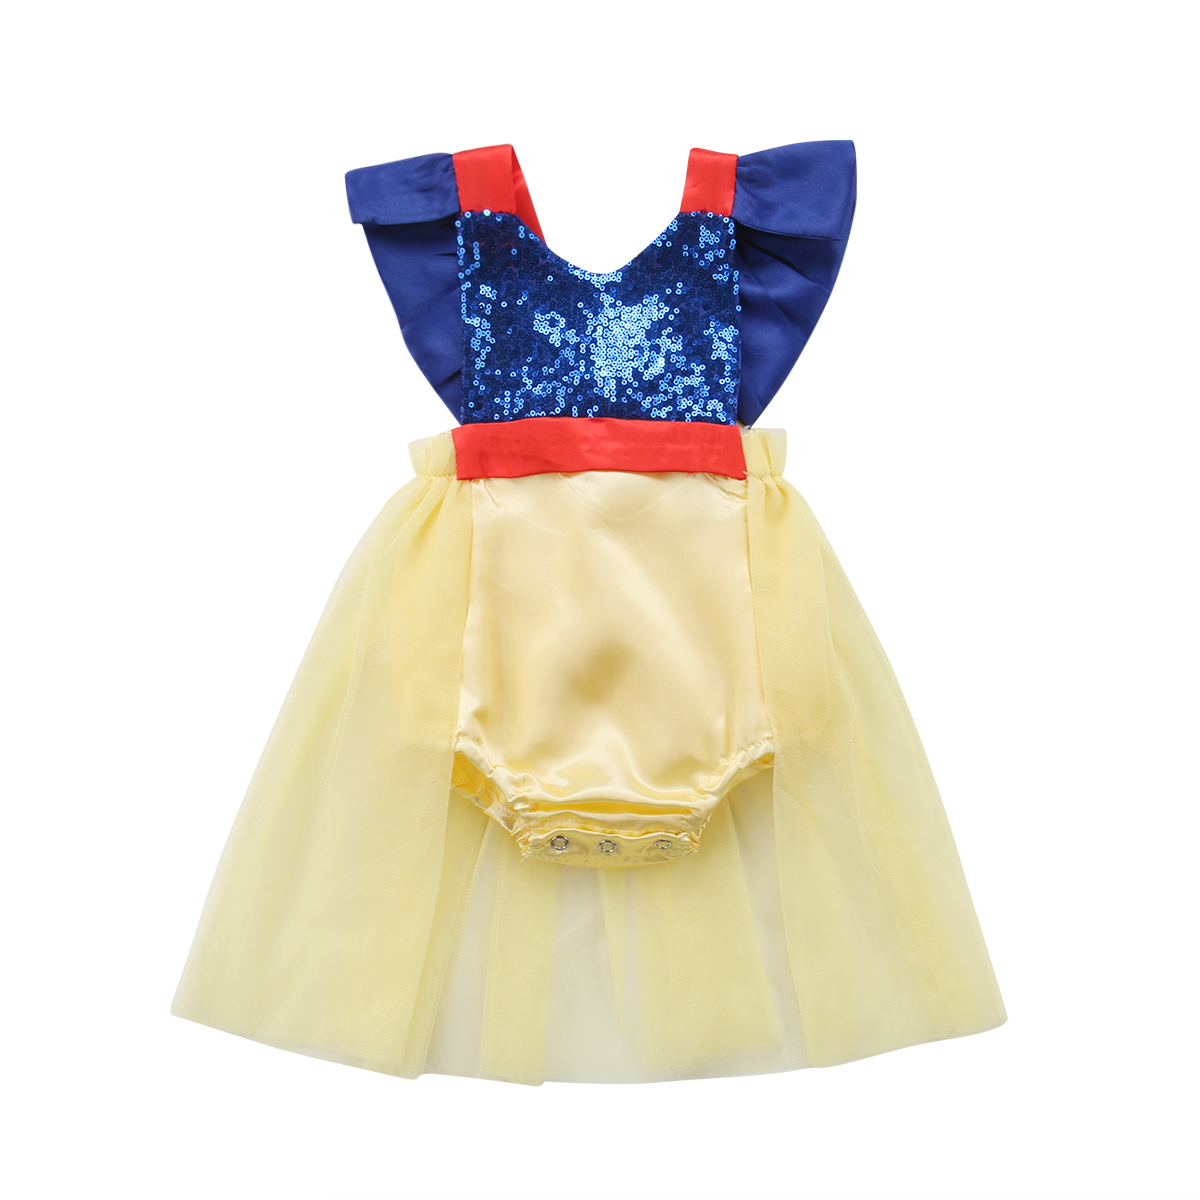 Sequins Newborn Baby Girl Ruffles Sleeveless Backless Bowknot Tulle Skirted   Romper   Jumpsuit Outfits Princess Baby Clothes